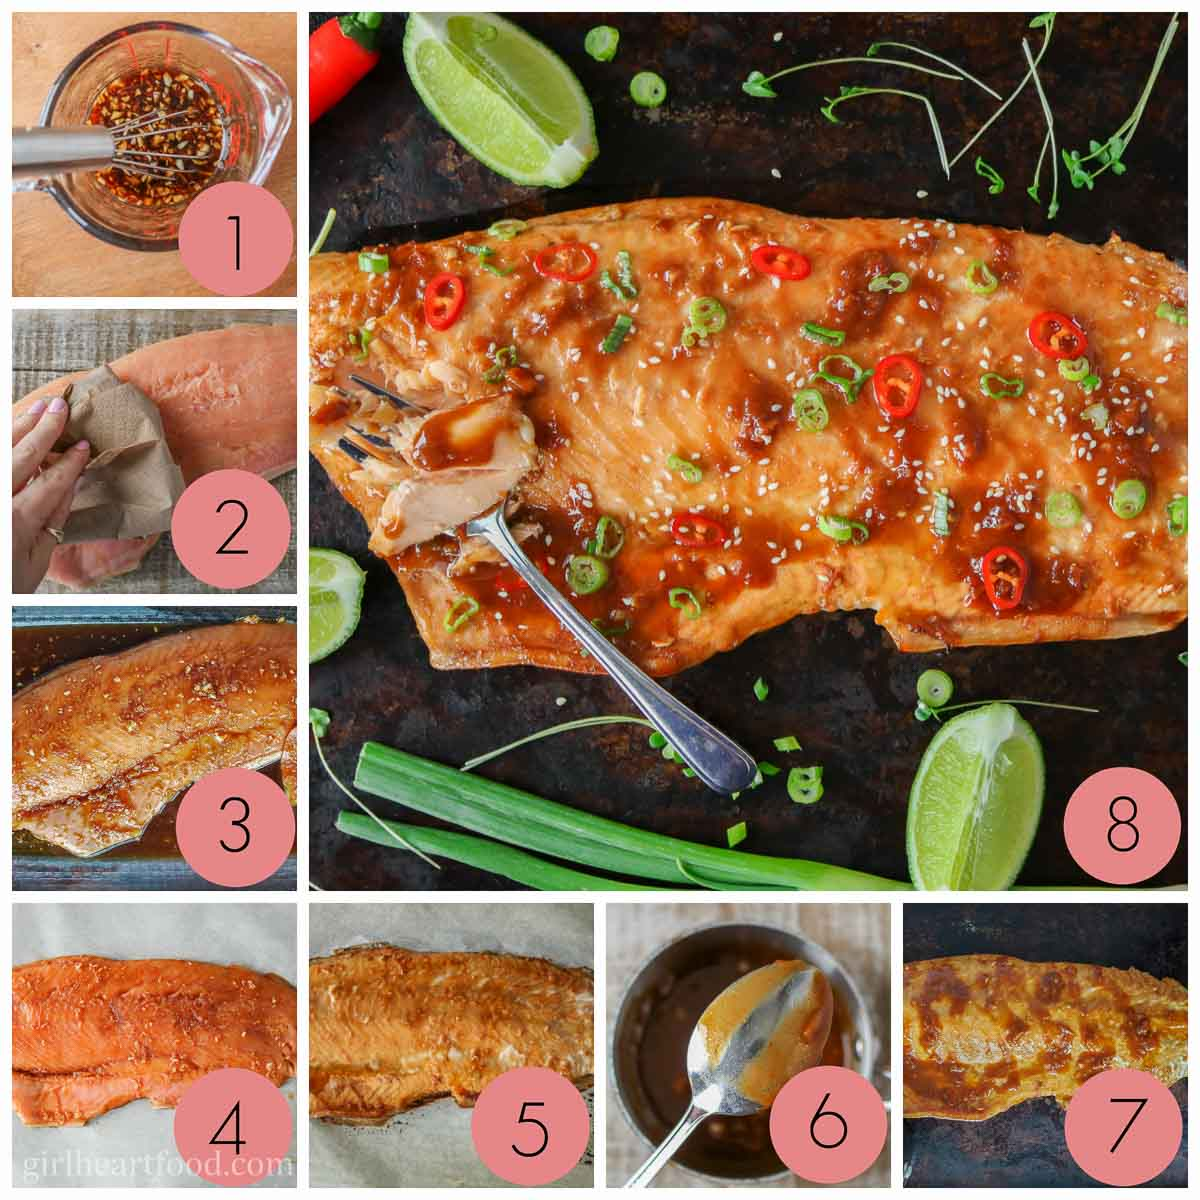 Collage of steps to make baked arctic char with marinade.